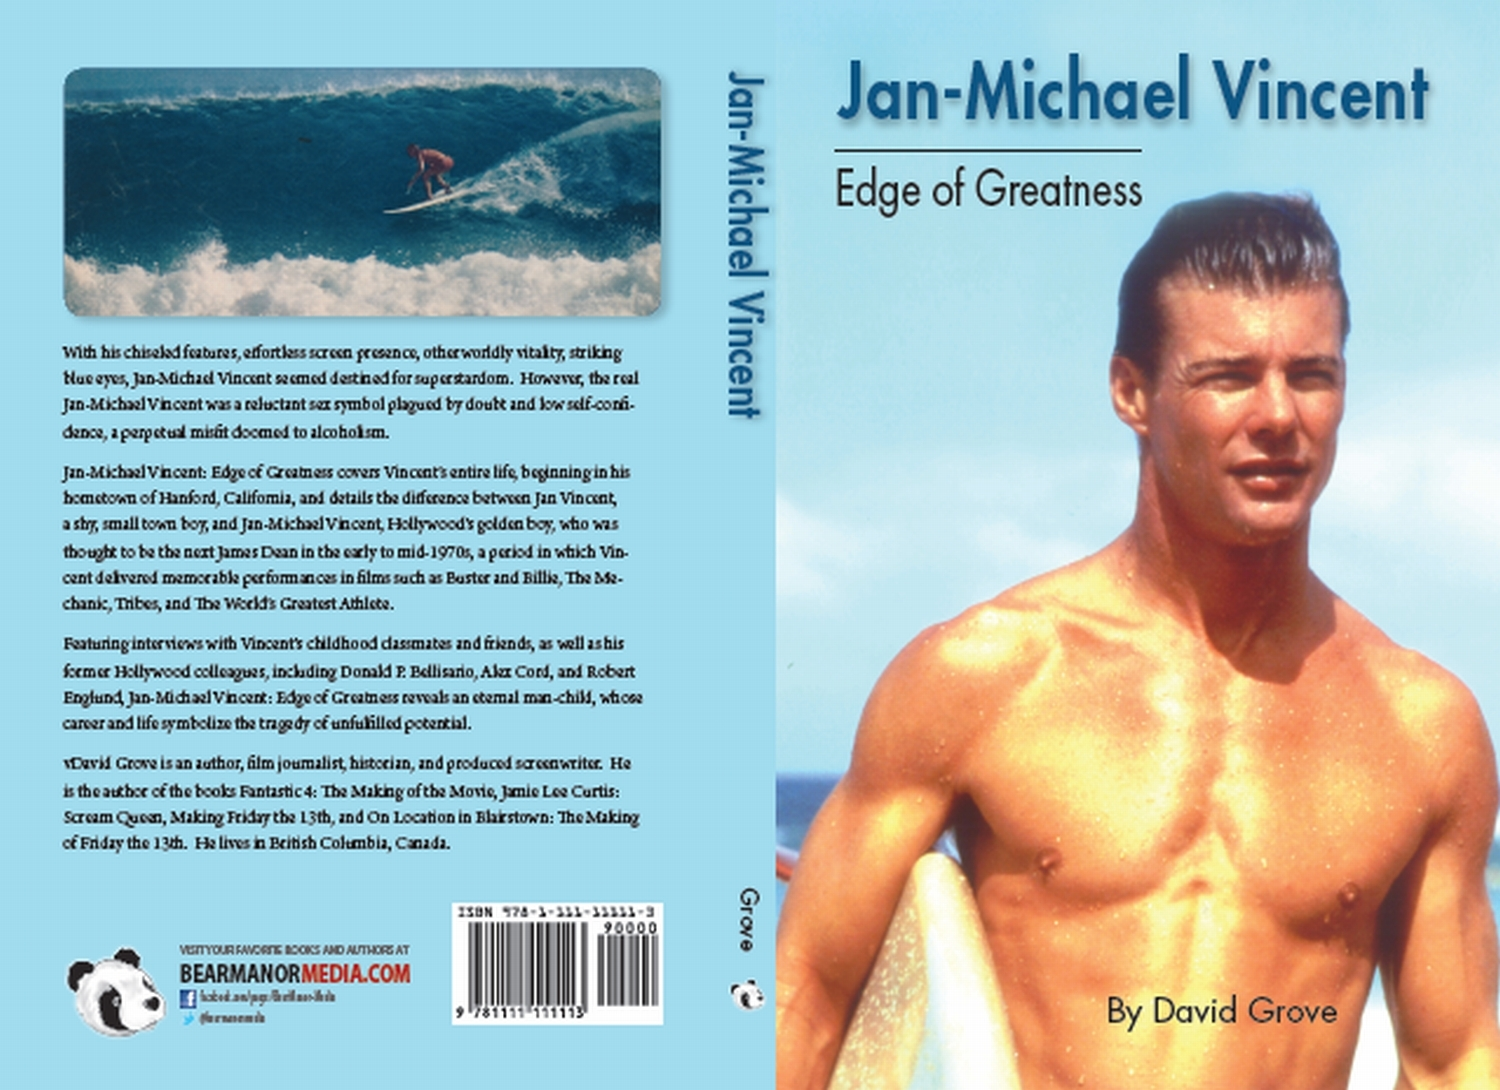 JAN MICHAEL VINCENT DEFIANCE